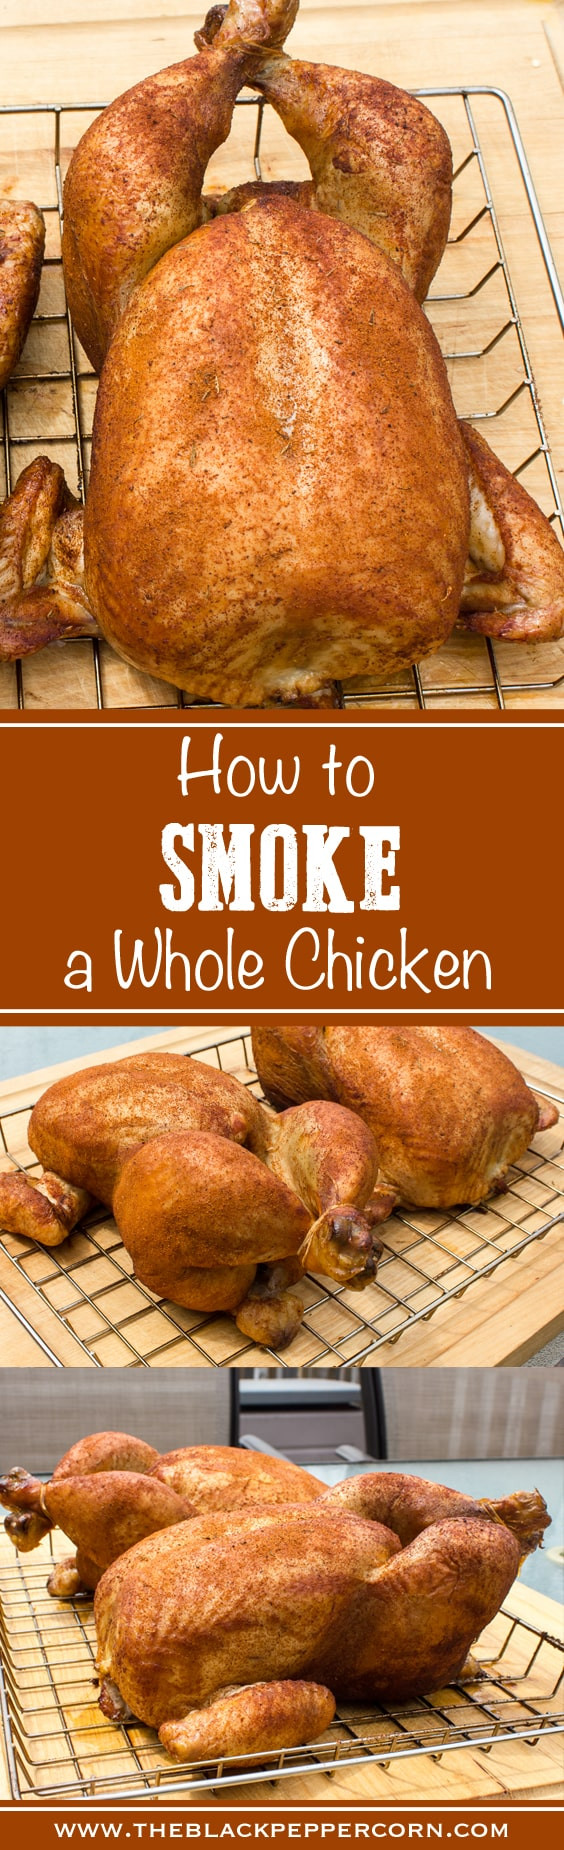 How Long To Smoke A Whole Chicken  how long to smoke a whole chicken at 250 degrees